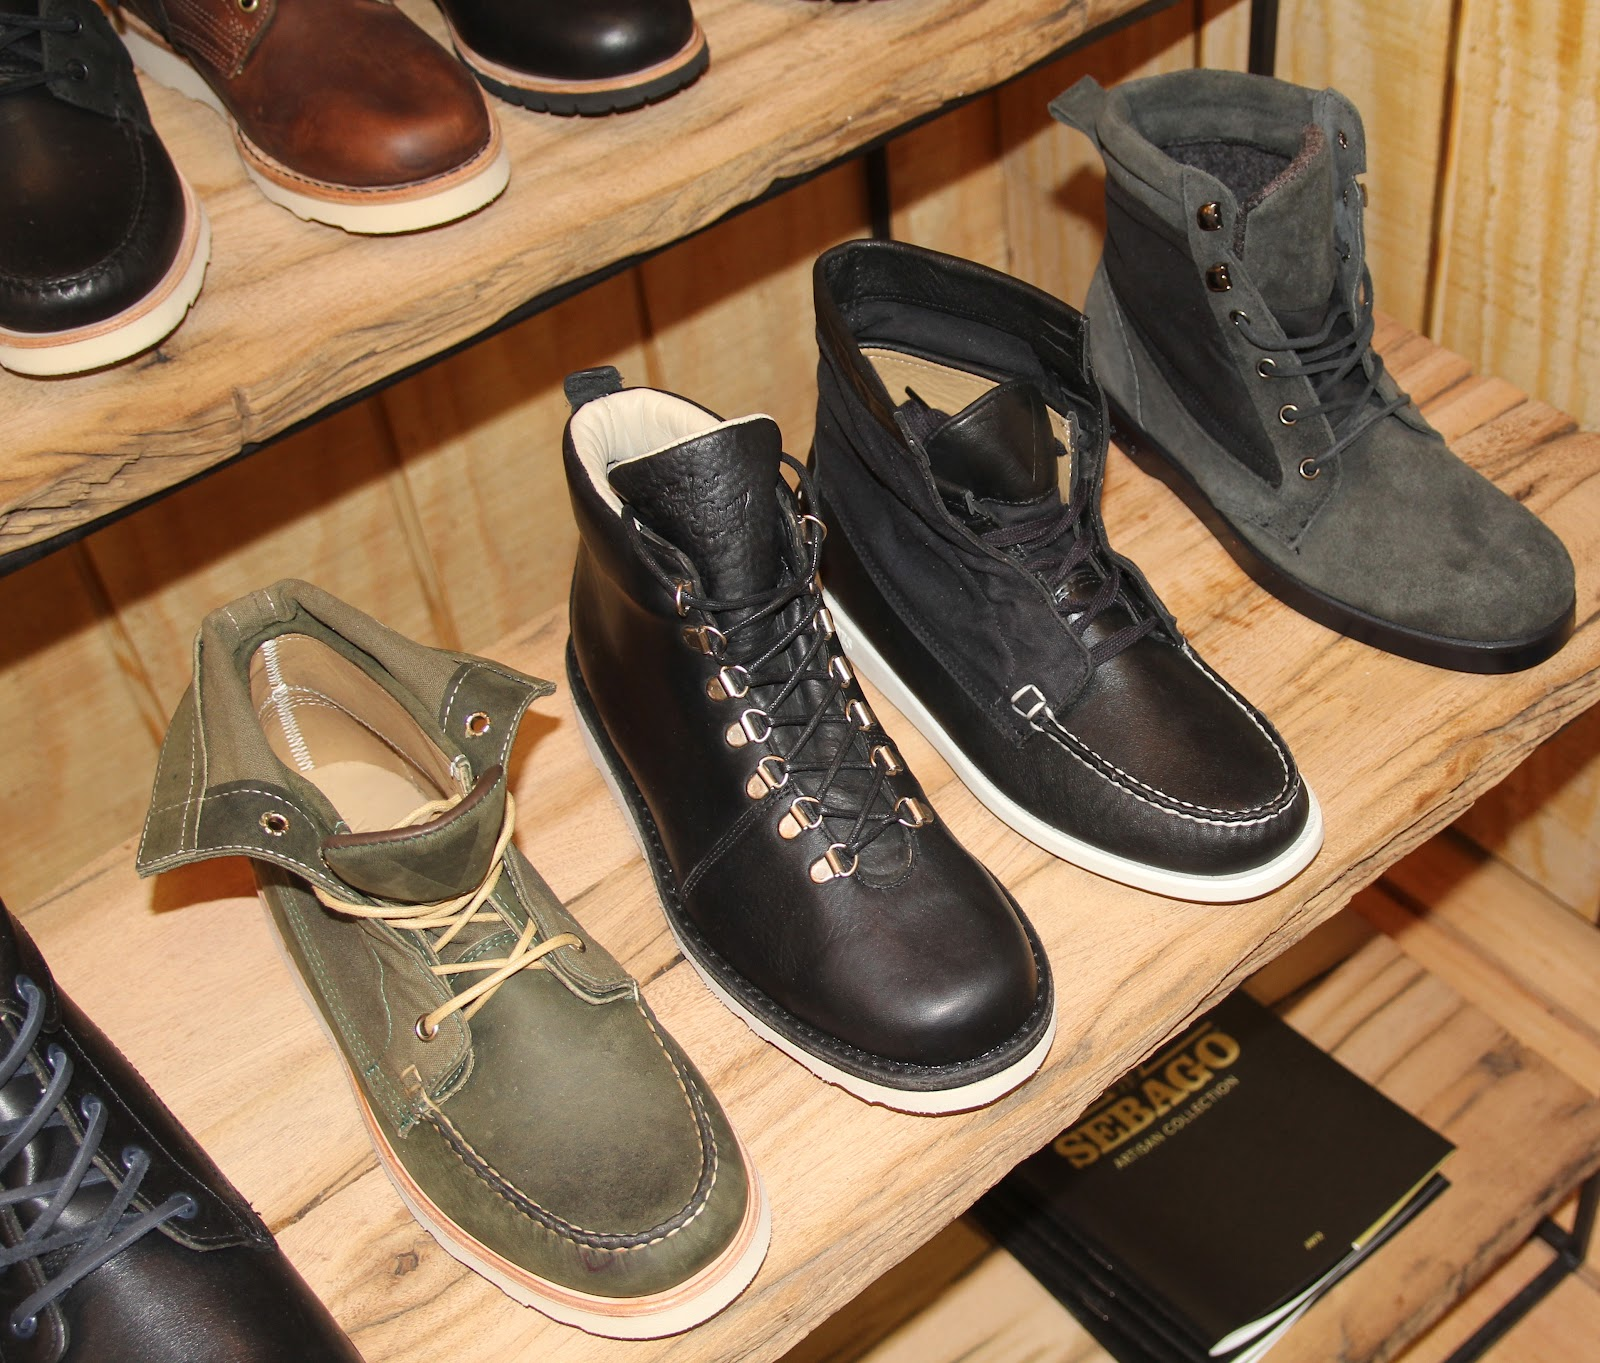 08387e64d7d96 The Brother's Bray & Co. handsome leather Everest (Black-middle left),  Vane's Exo Command (Olive-left) and Kings Point Ronnie Fieg's(Black-middle  right)